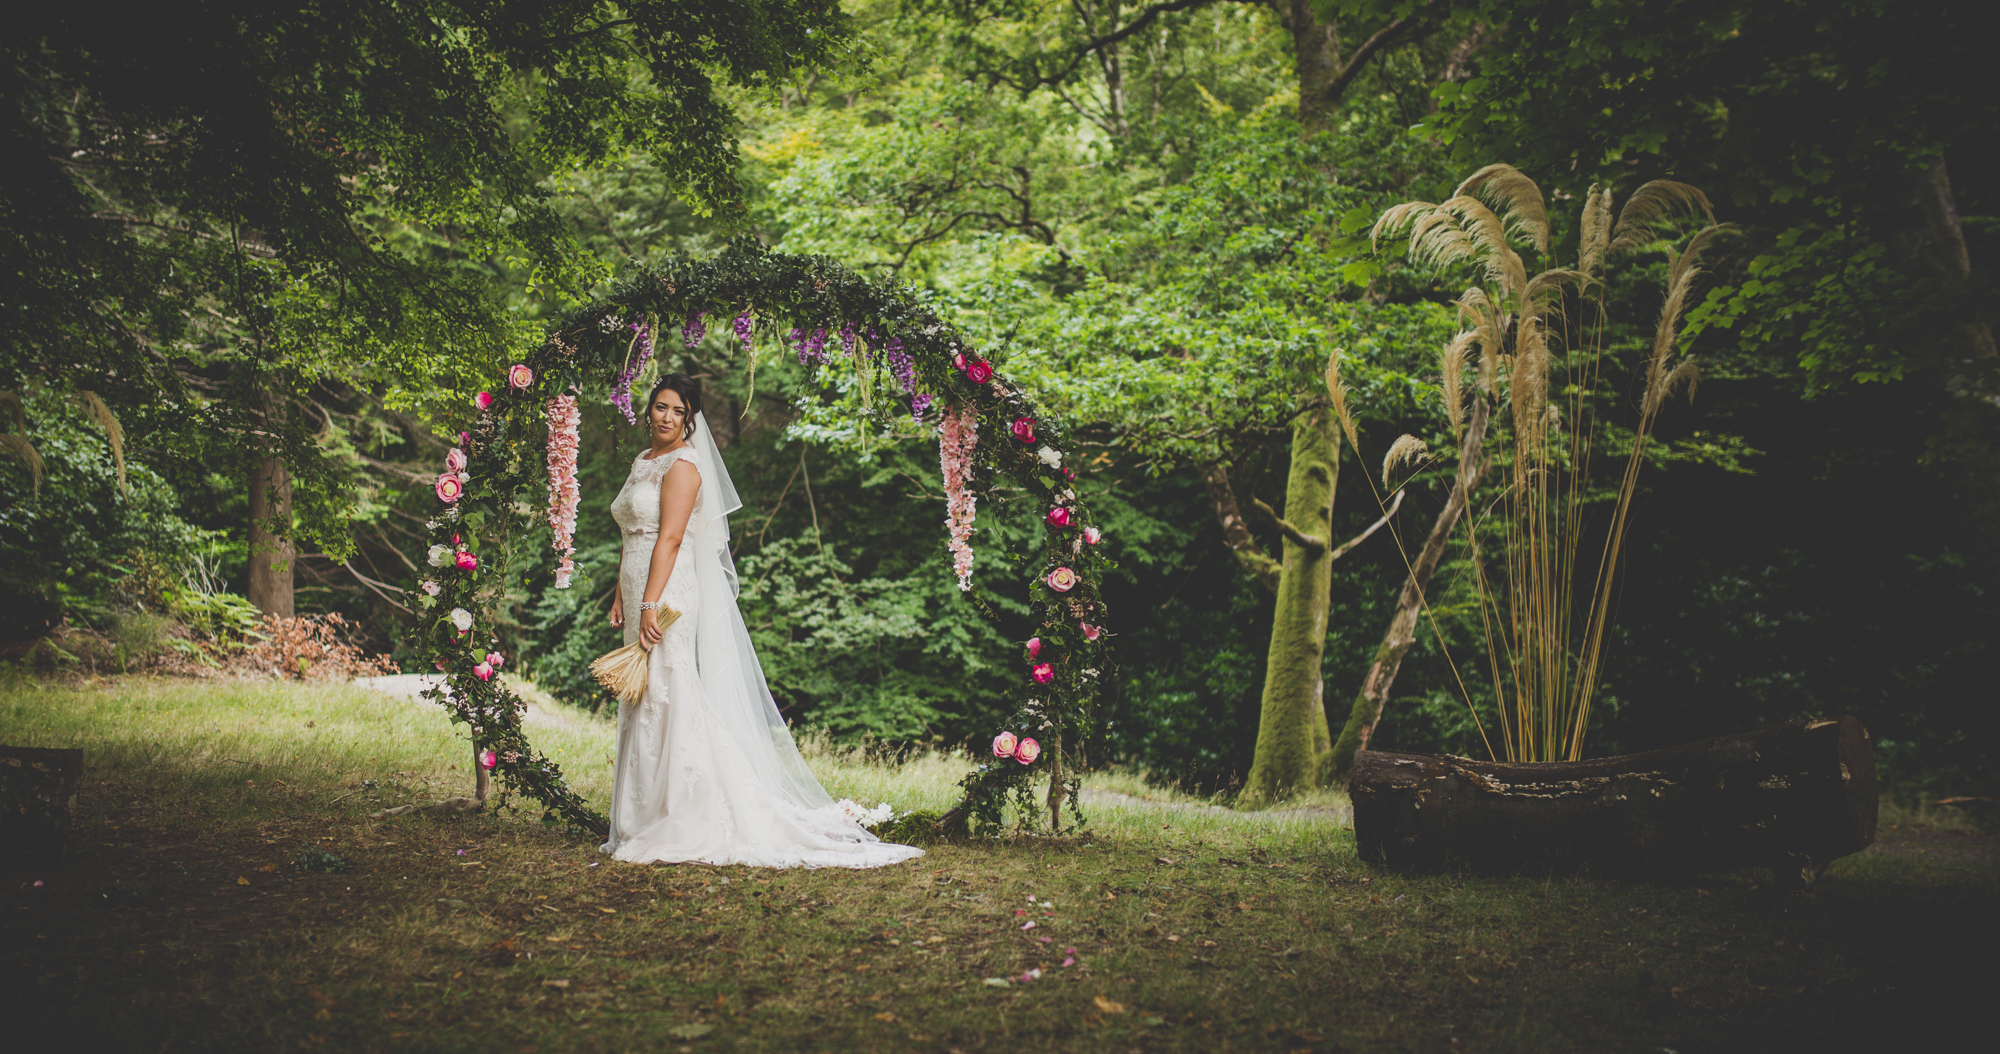 Laura Marie & Ross - Tollymore Forest Park Outdoor Wedding, Photo By Andrew McKenna Photography Newcastle County Down, Northern Ireland. Wedding Hugh McCann's Newcastle